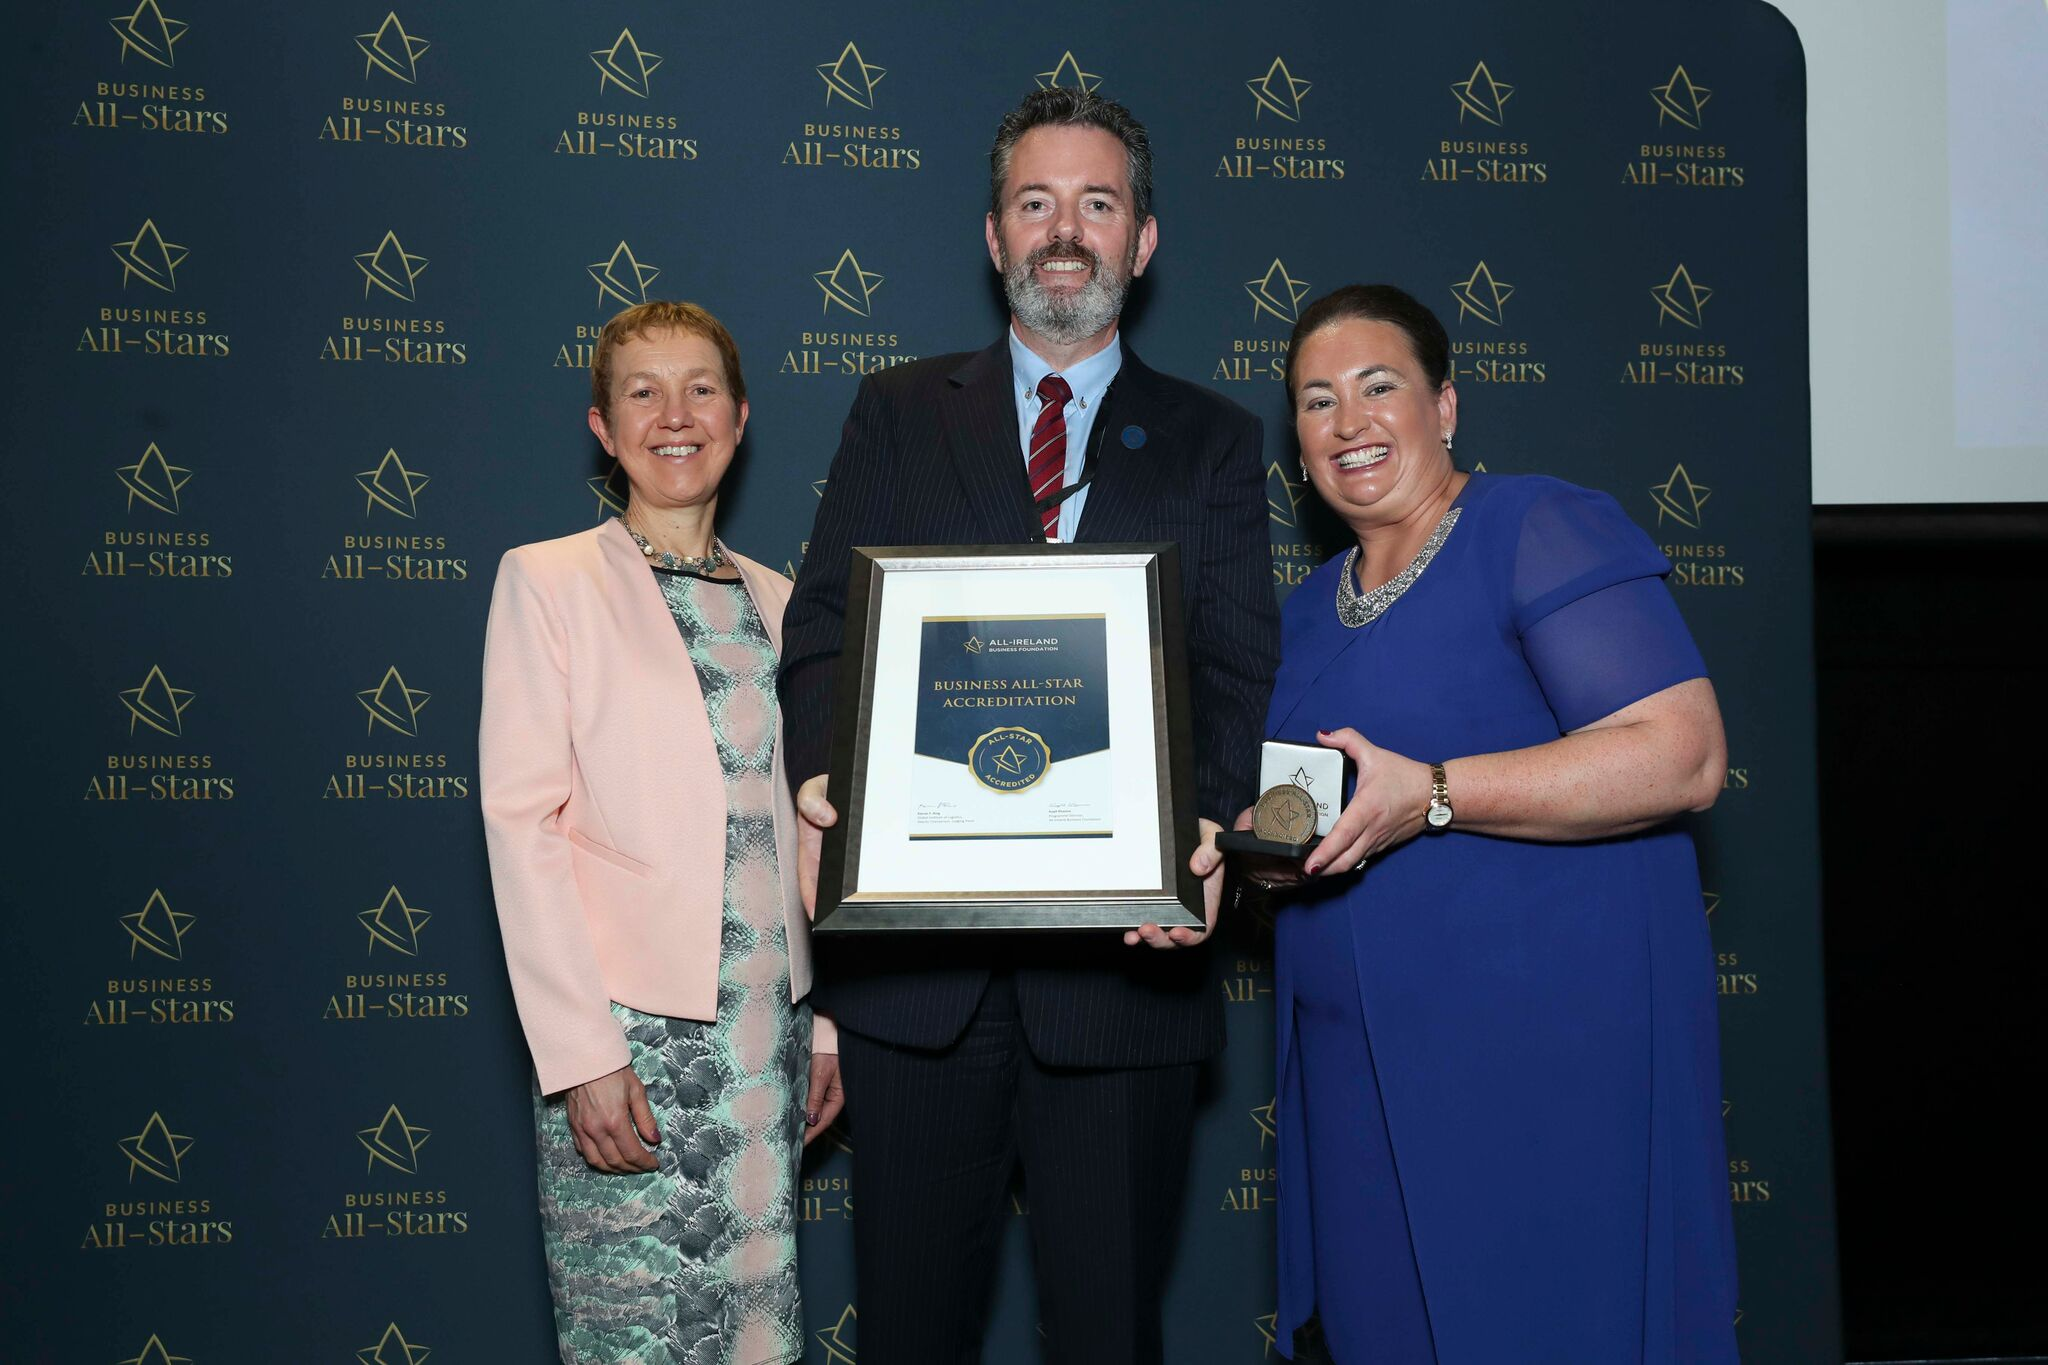 Philip Cullen - Southeast Financial Services receiving Business All-Star Thought Leader Accreditation at Croke Park from Dr Briga Hynes, Kemmy Business School, University of Limerick and Elaine Carroll CEO, All-Ireland Business Foundation.